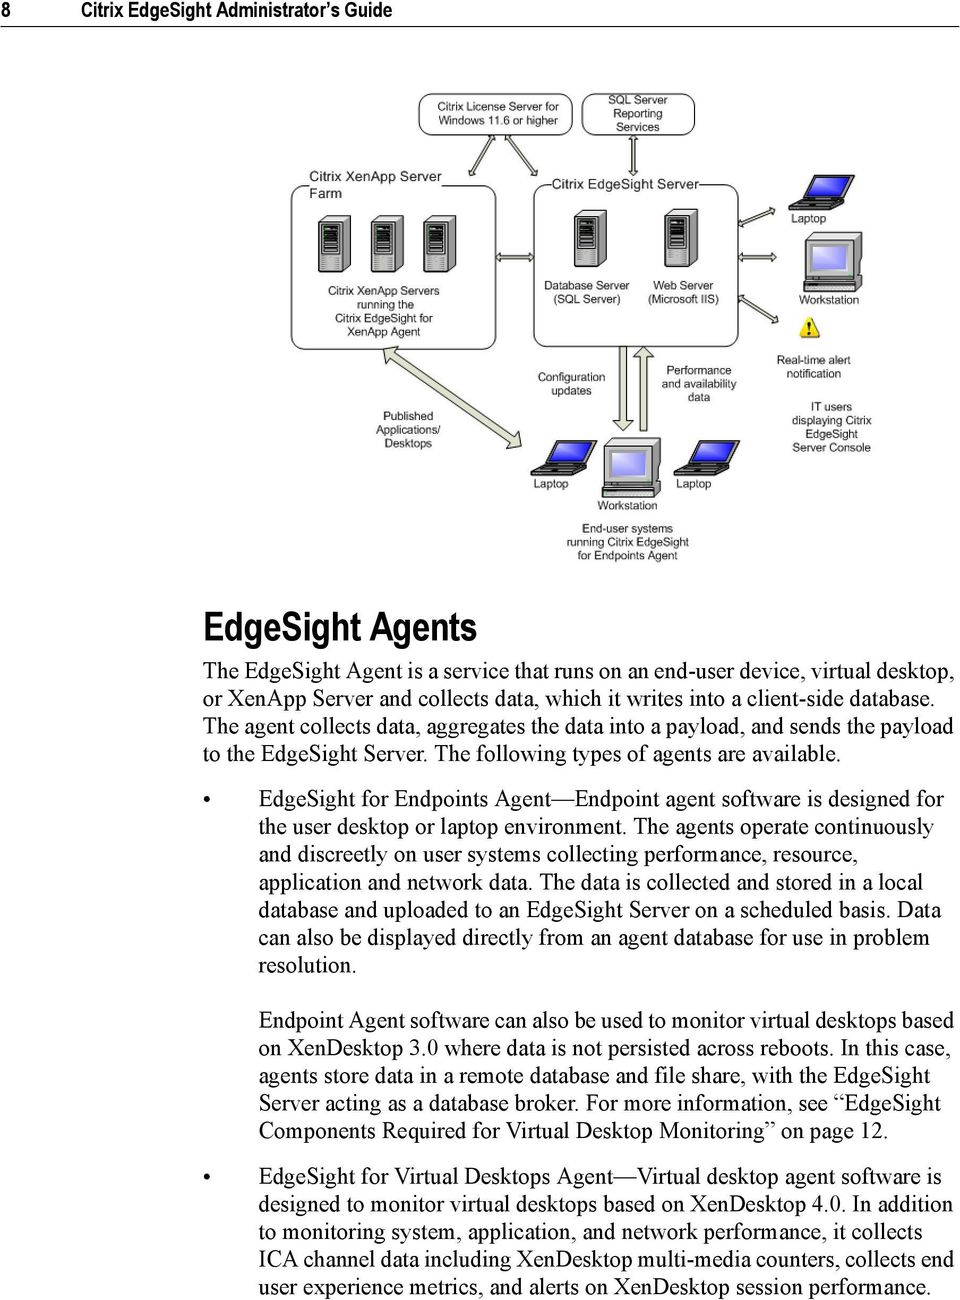 EdgeSight for Endpoints Agent Endpoint agent software is designed for the user desktop or laptop environment.